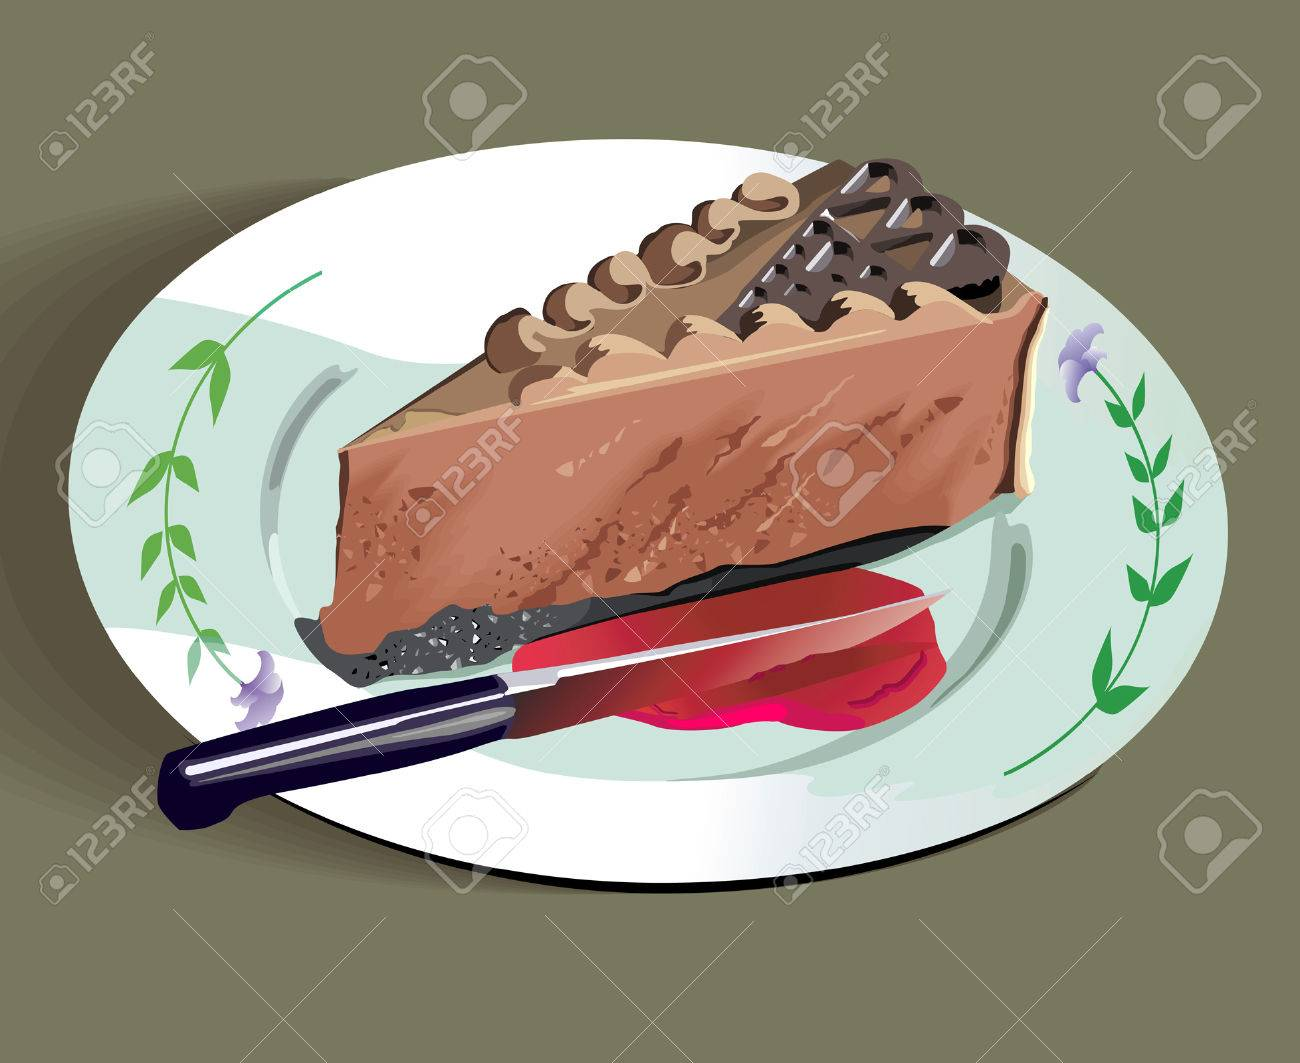 A Slice of cake and knife on plate Stock Vector - 1695039 : cake and plate - pezcame.com